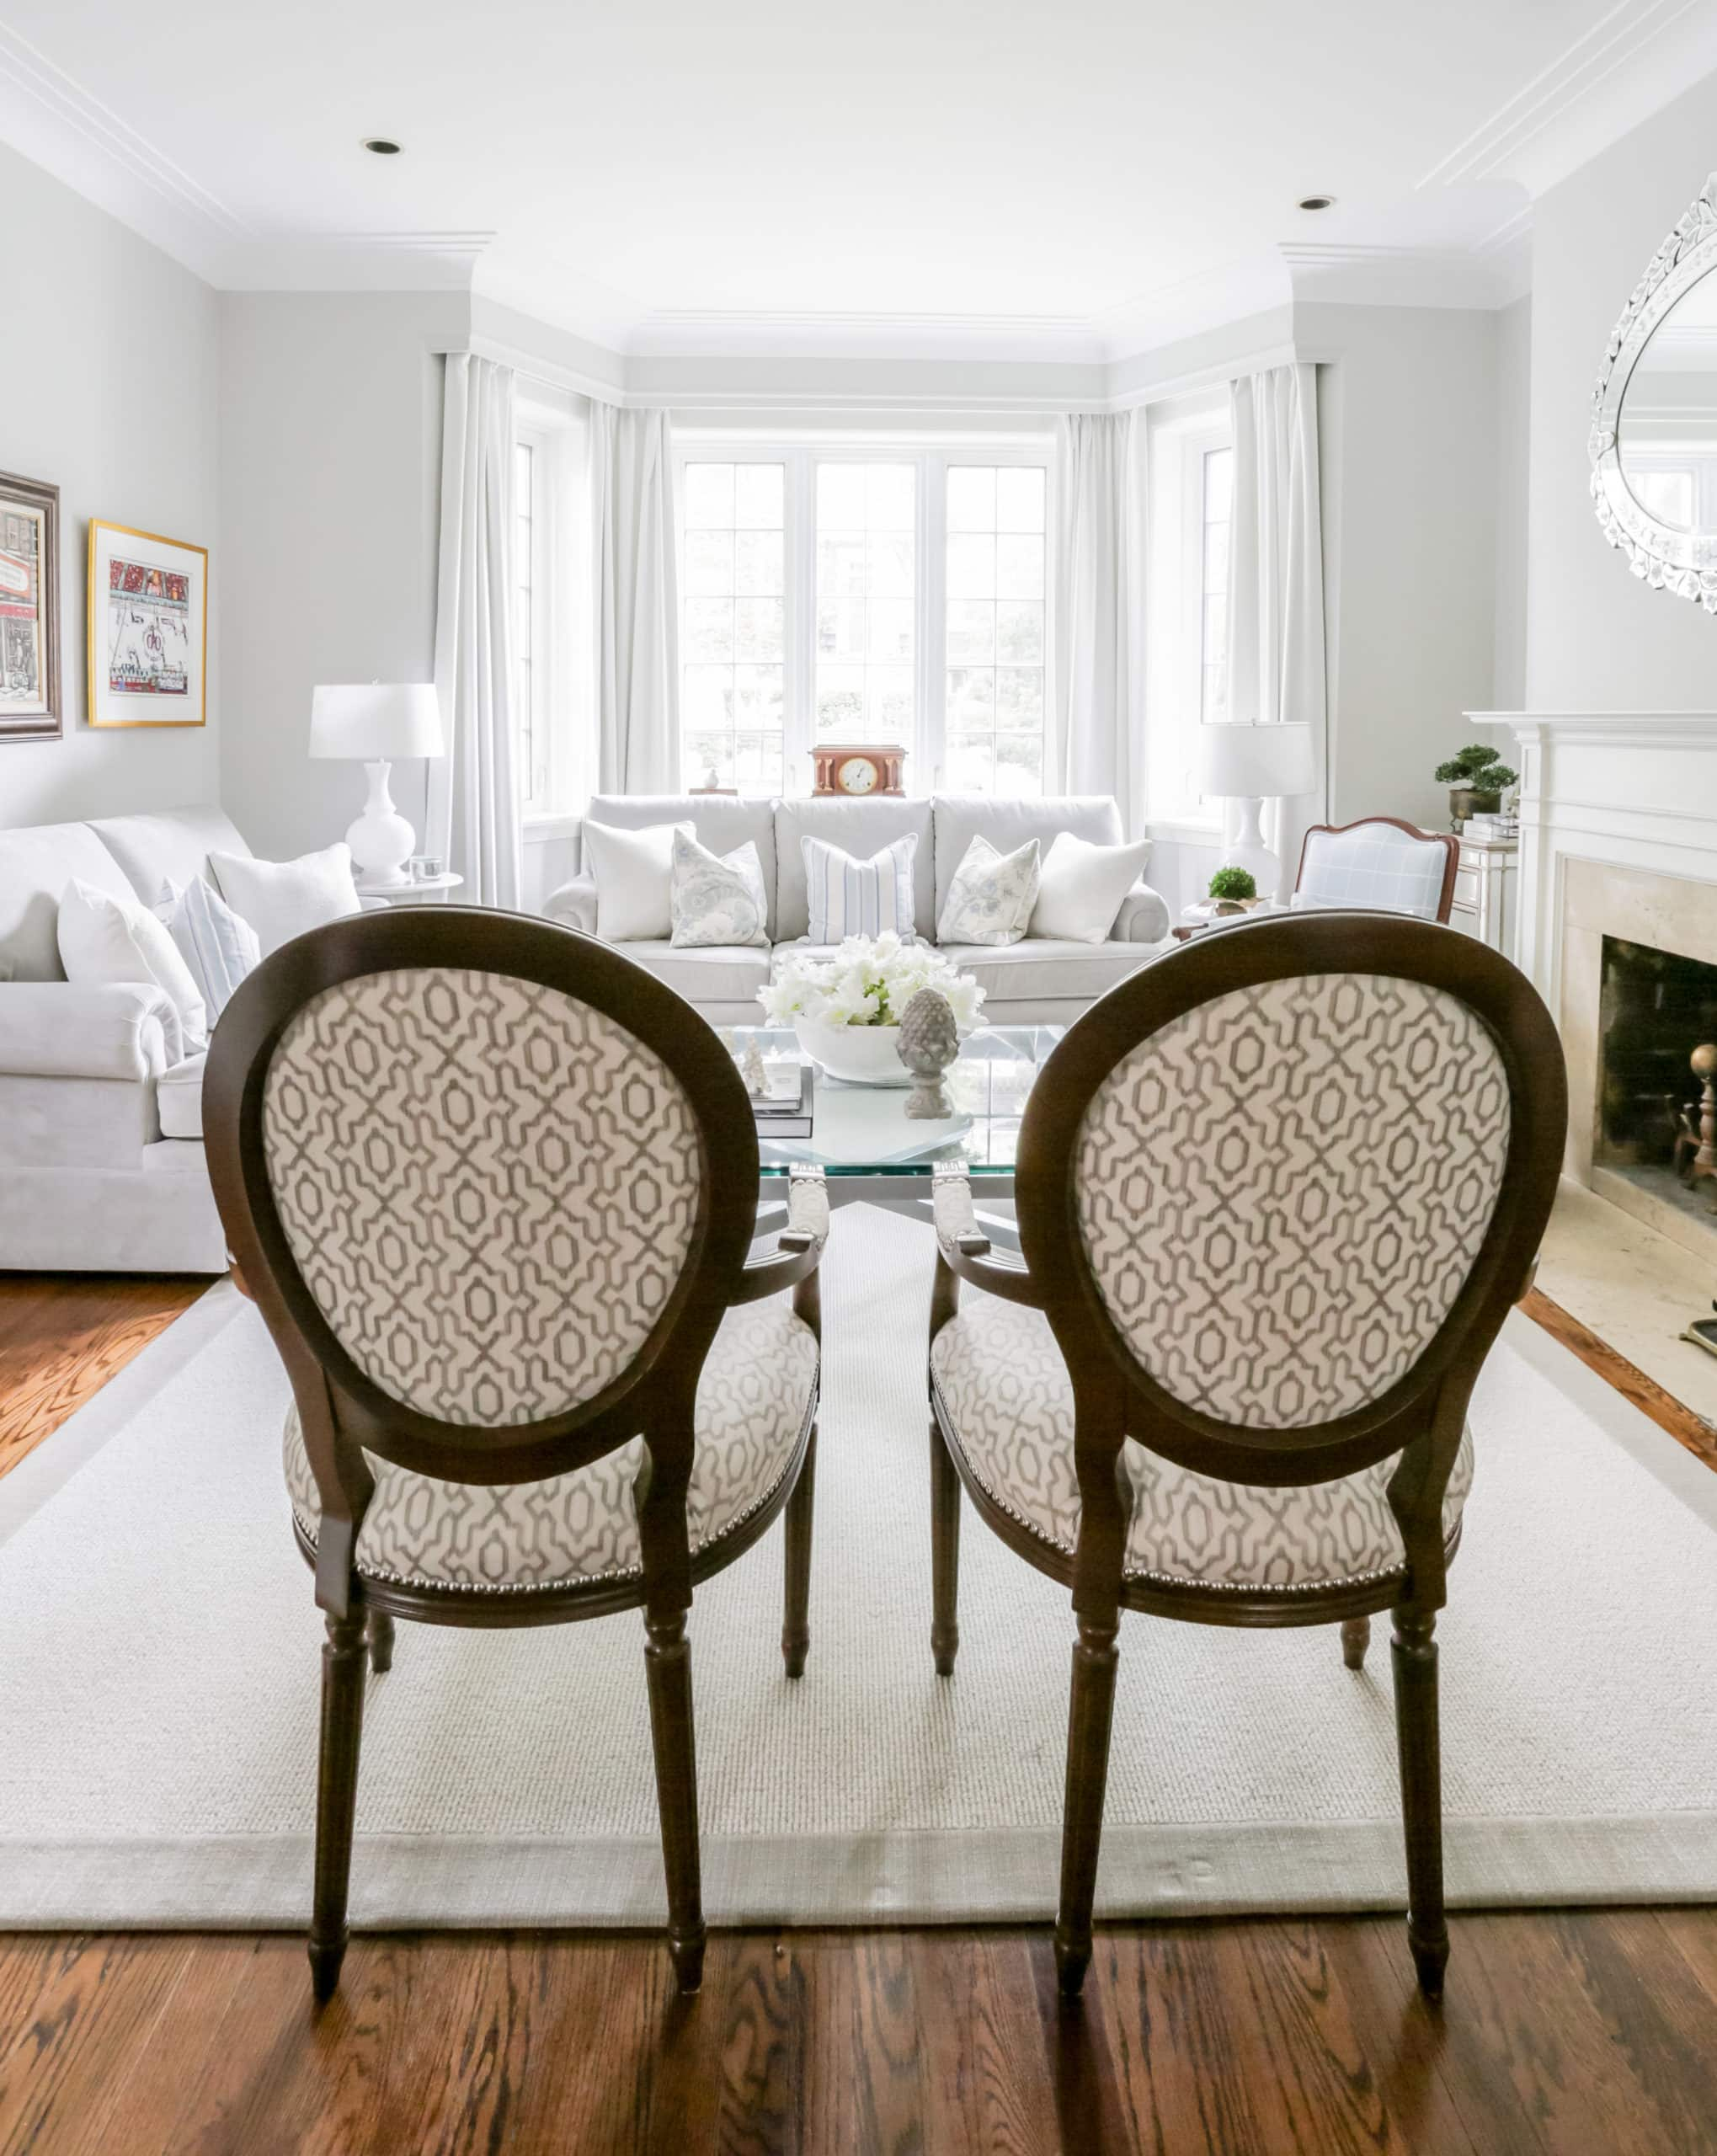 Large, bright living room with a focus on the back of a couple small chairs